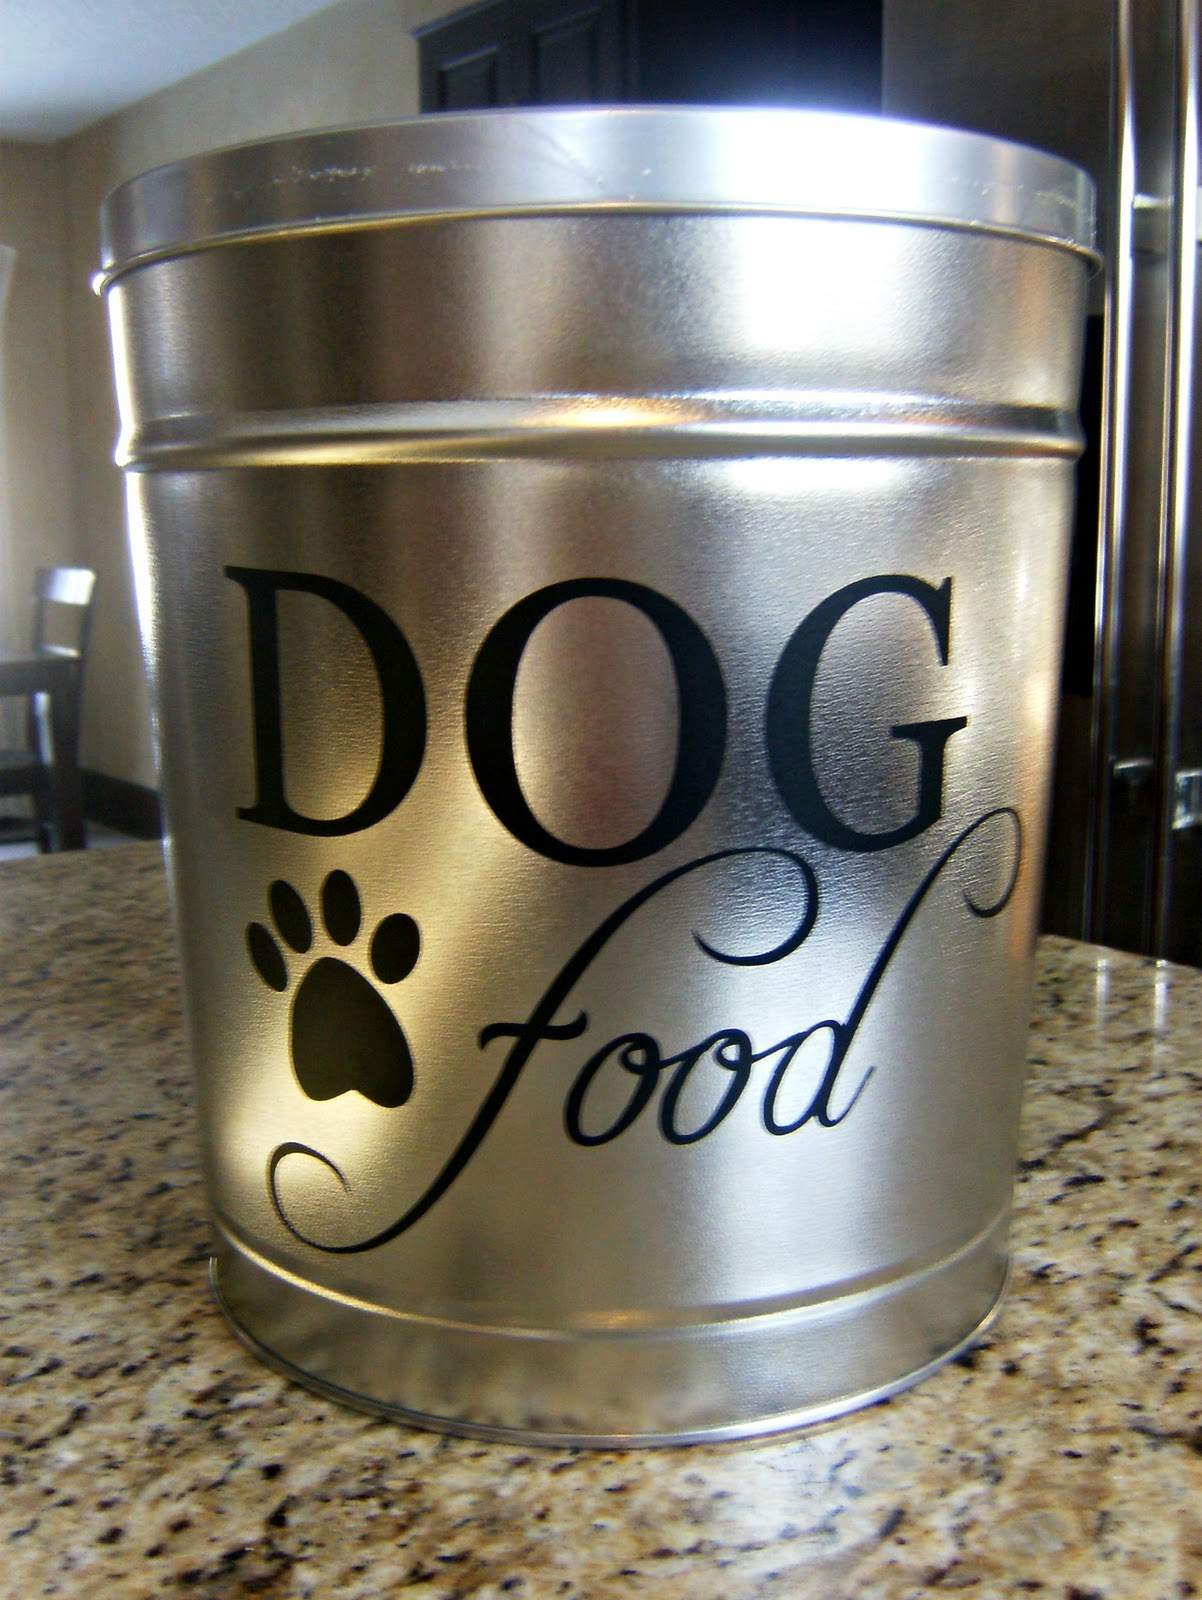 How Many Tins Of Food A Day For A Dog